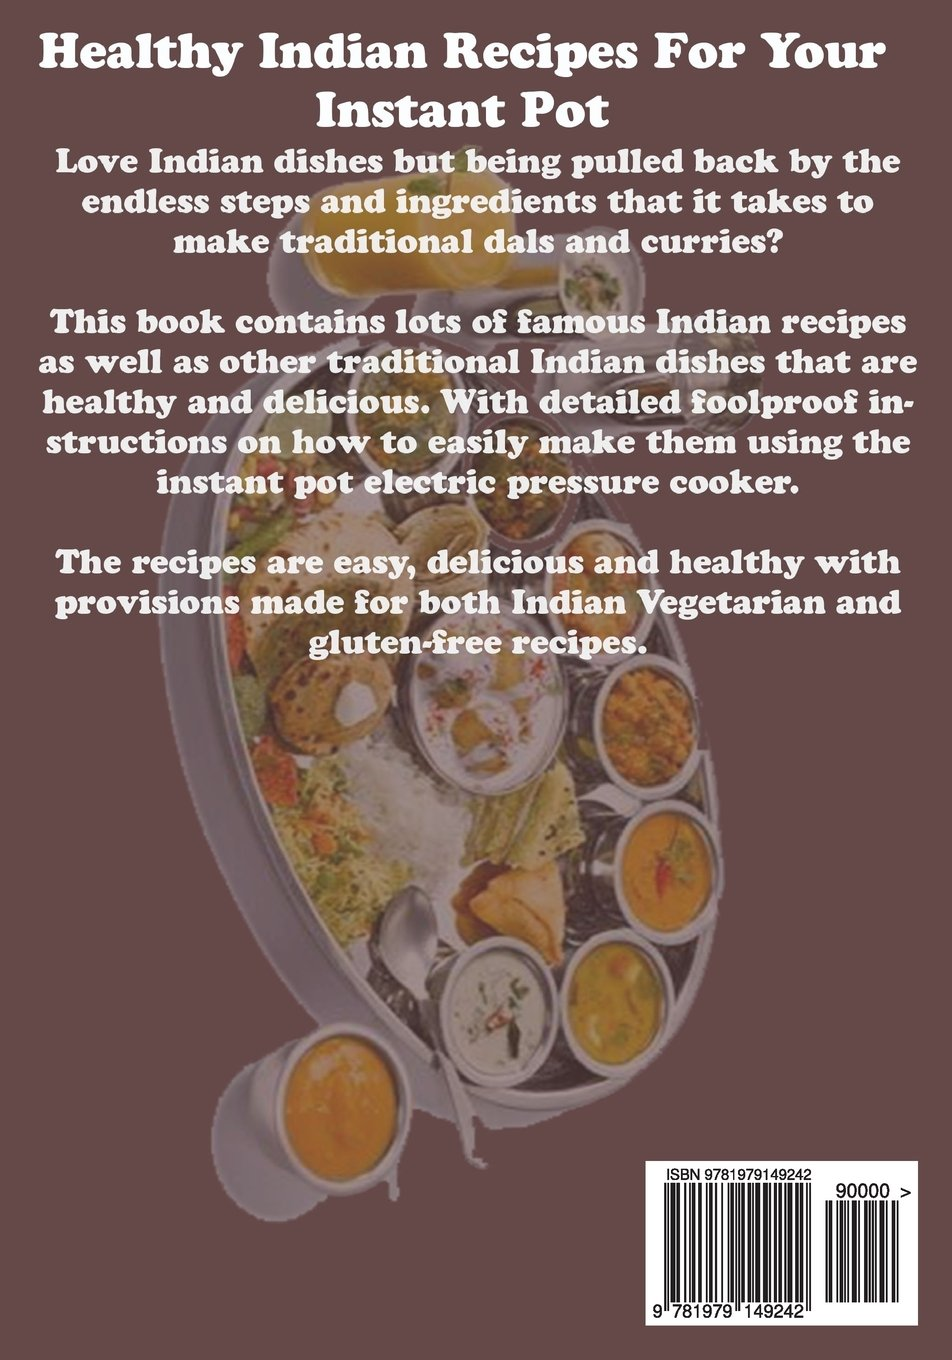 Indian instant pot cookbook healthy delicious indian dishes made indian instant pot cookbook healthy delicious indian dishes made easy with the instant pot and other electric pressure cookers natasha amit forumfinder Image collections